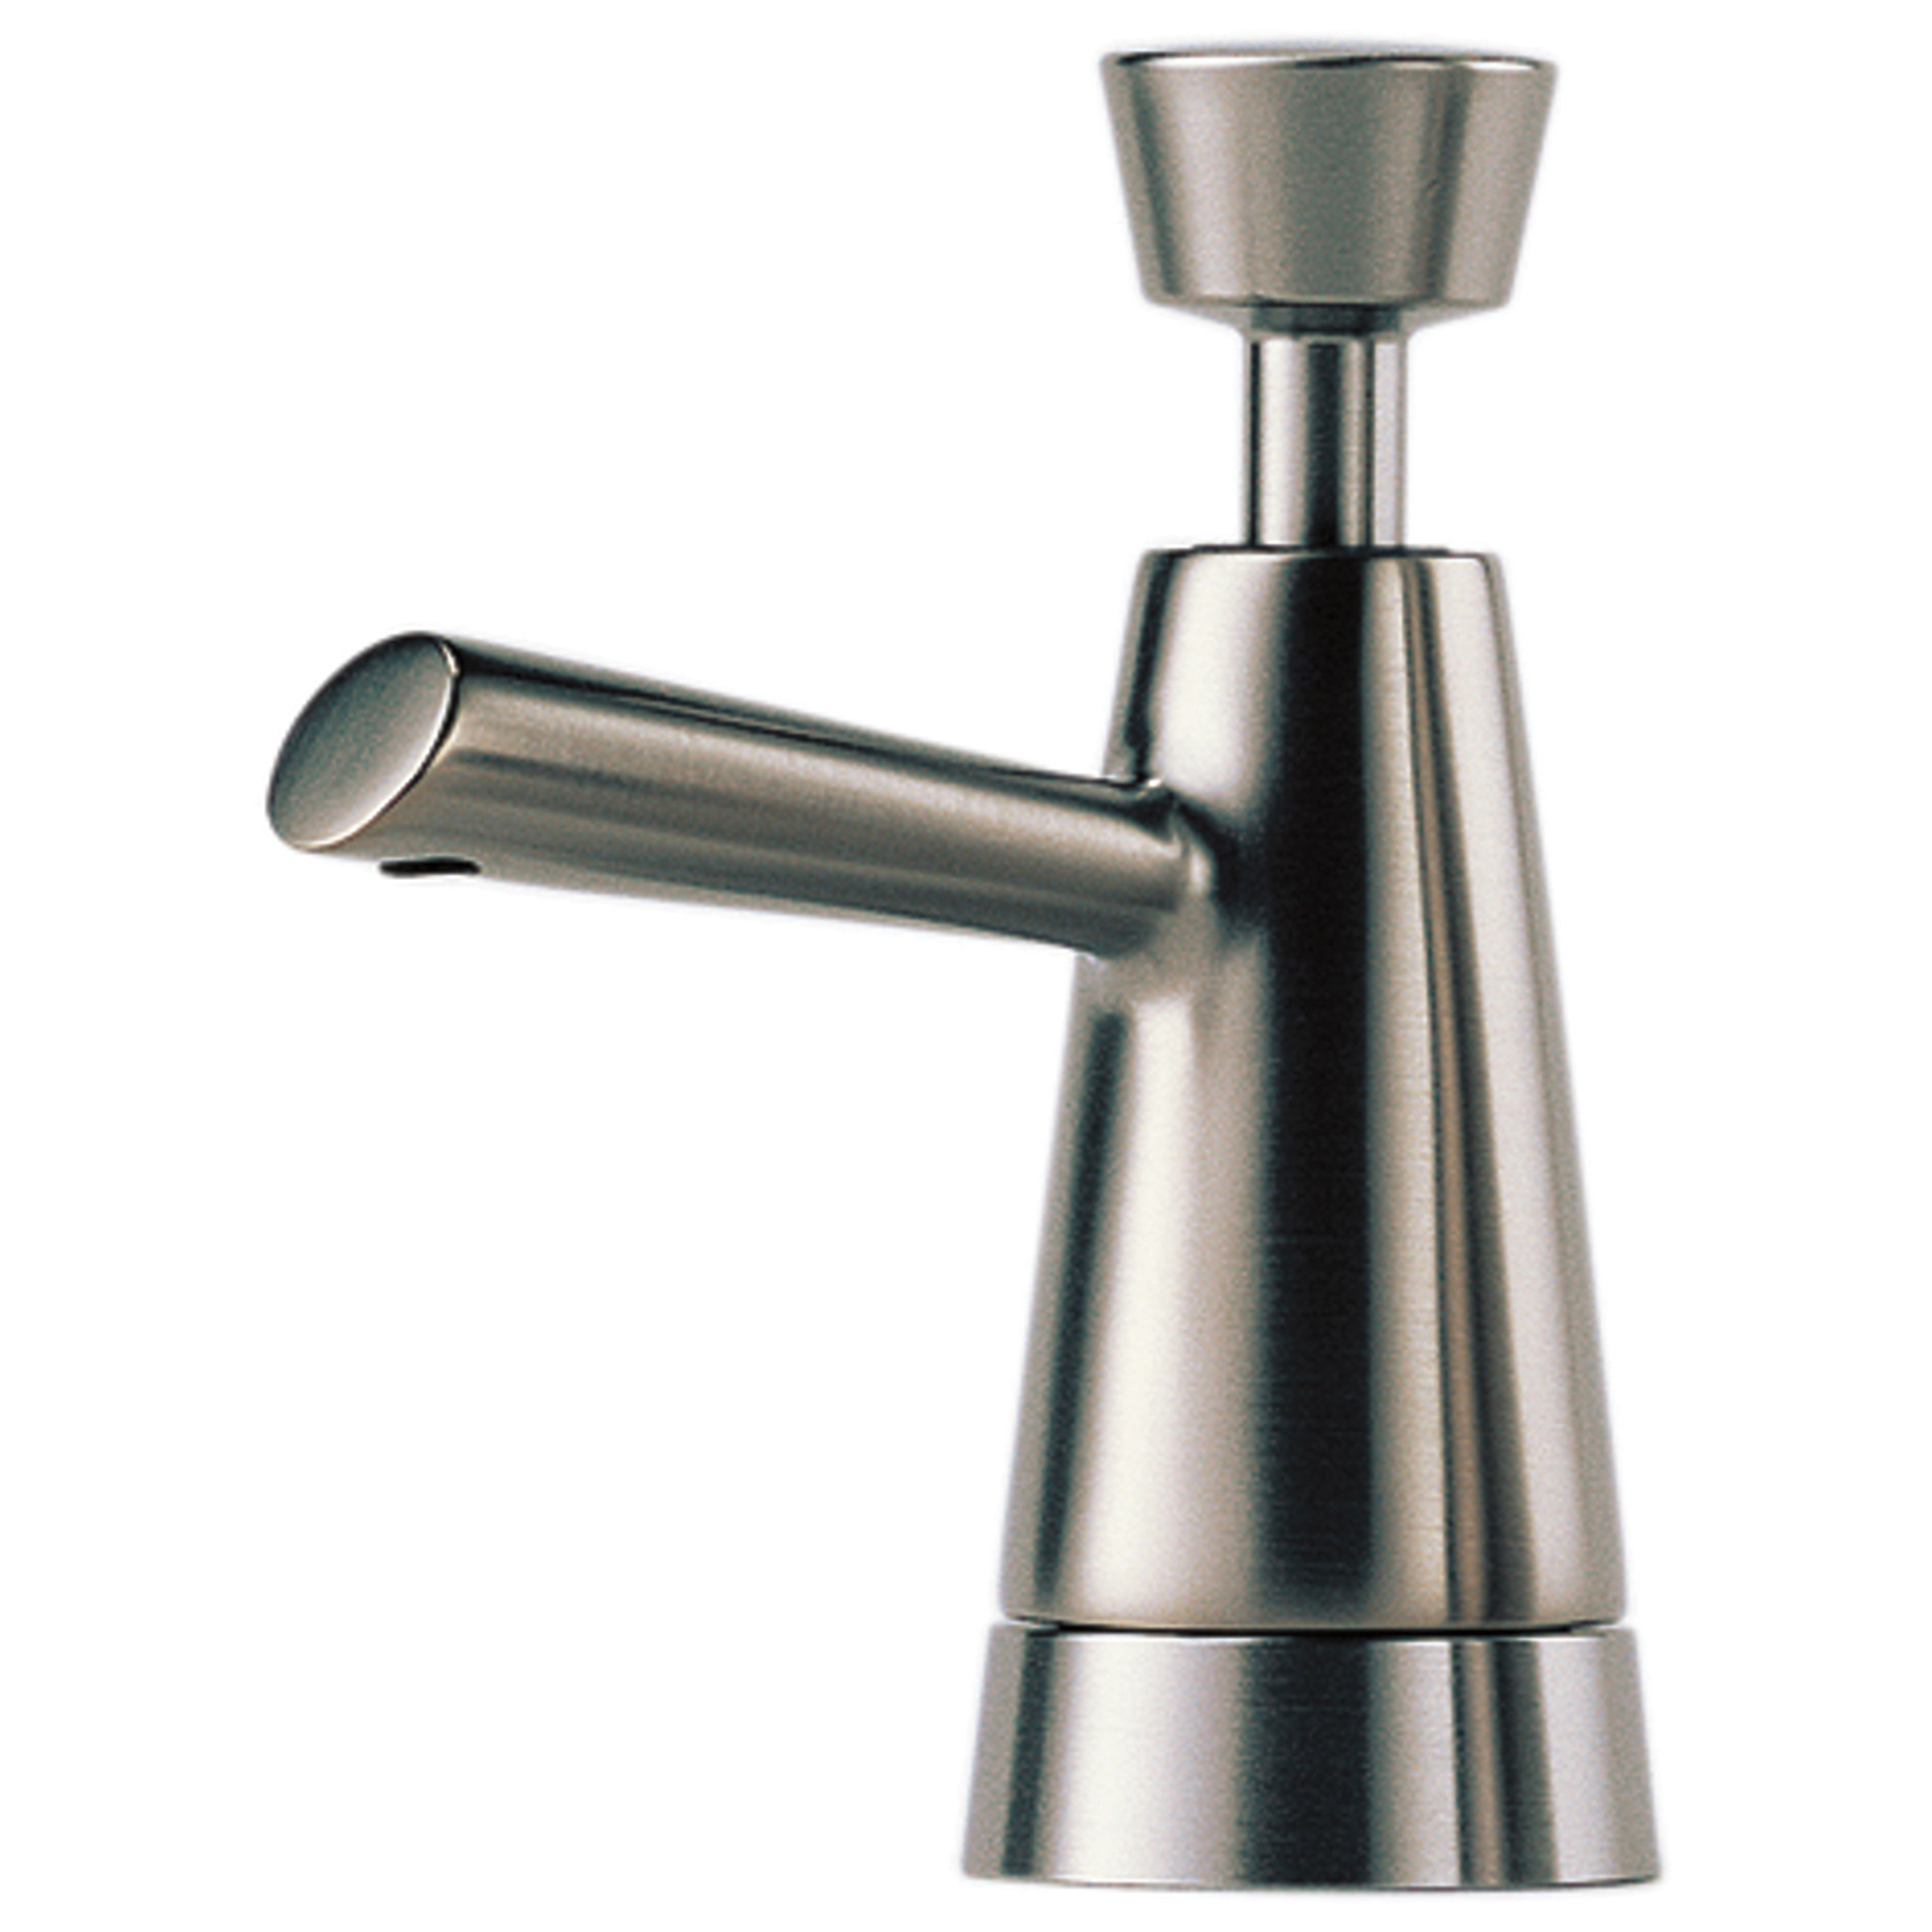 Brizo® RP42878-SS Venuto® Soap/Lotion Dispenser, Stainless Steel, 13 oz, Deck Mount, Brass